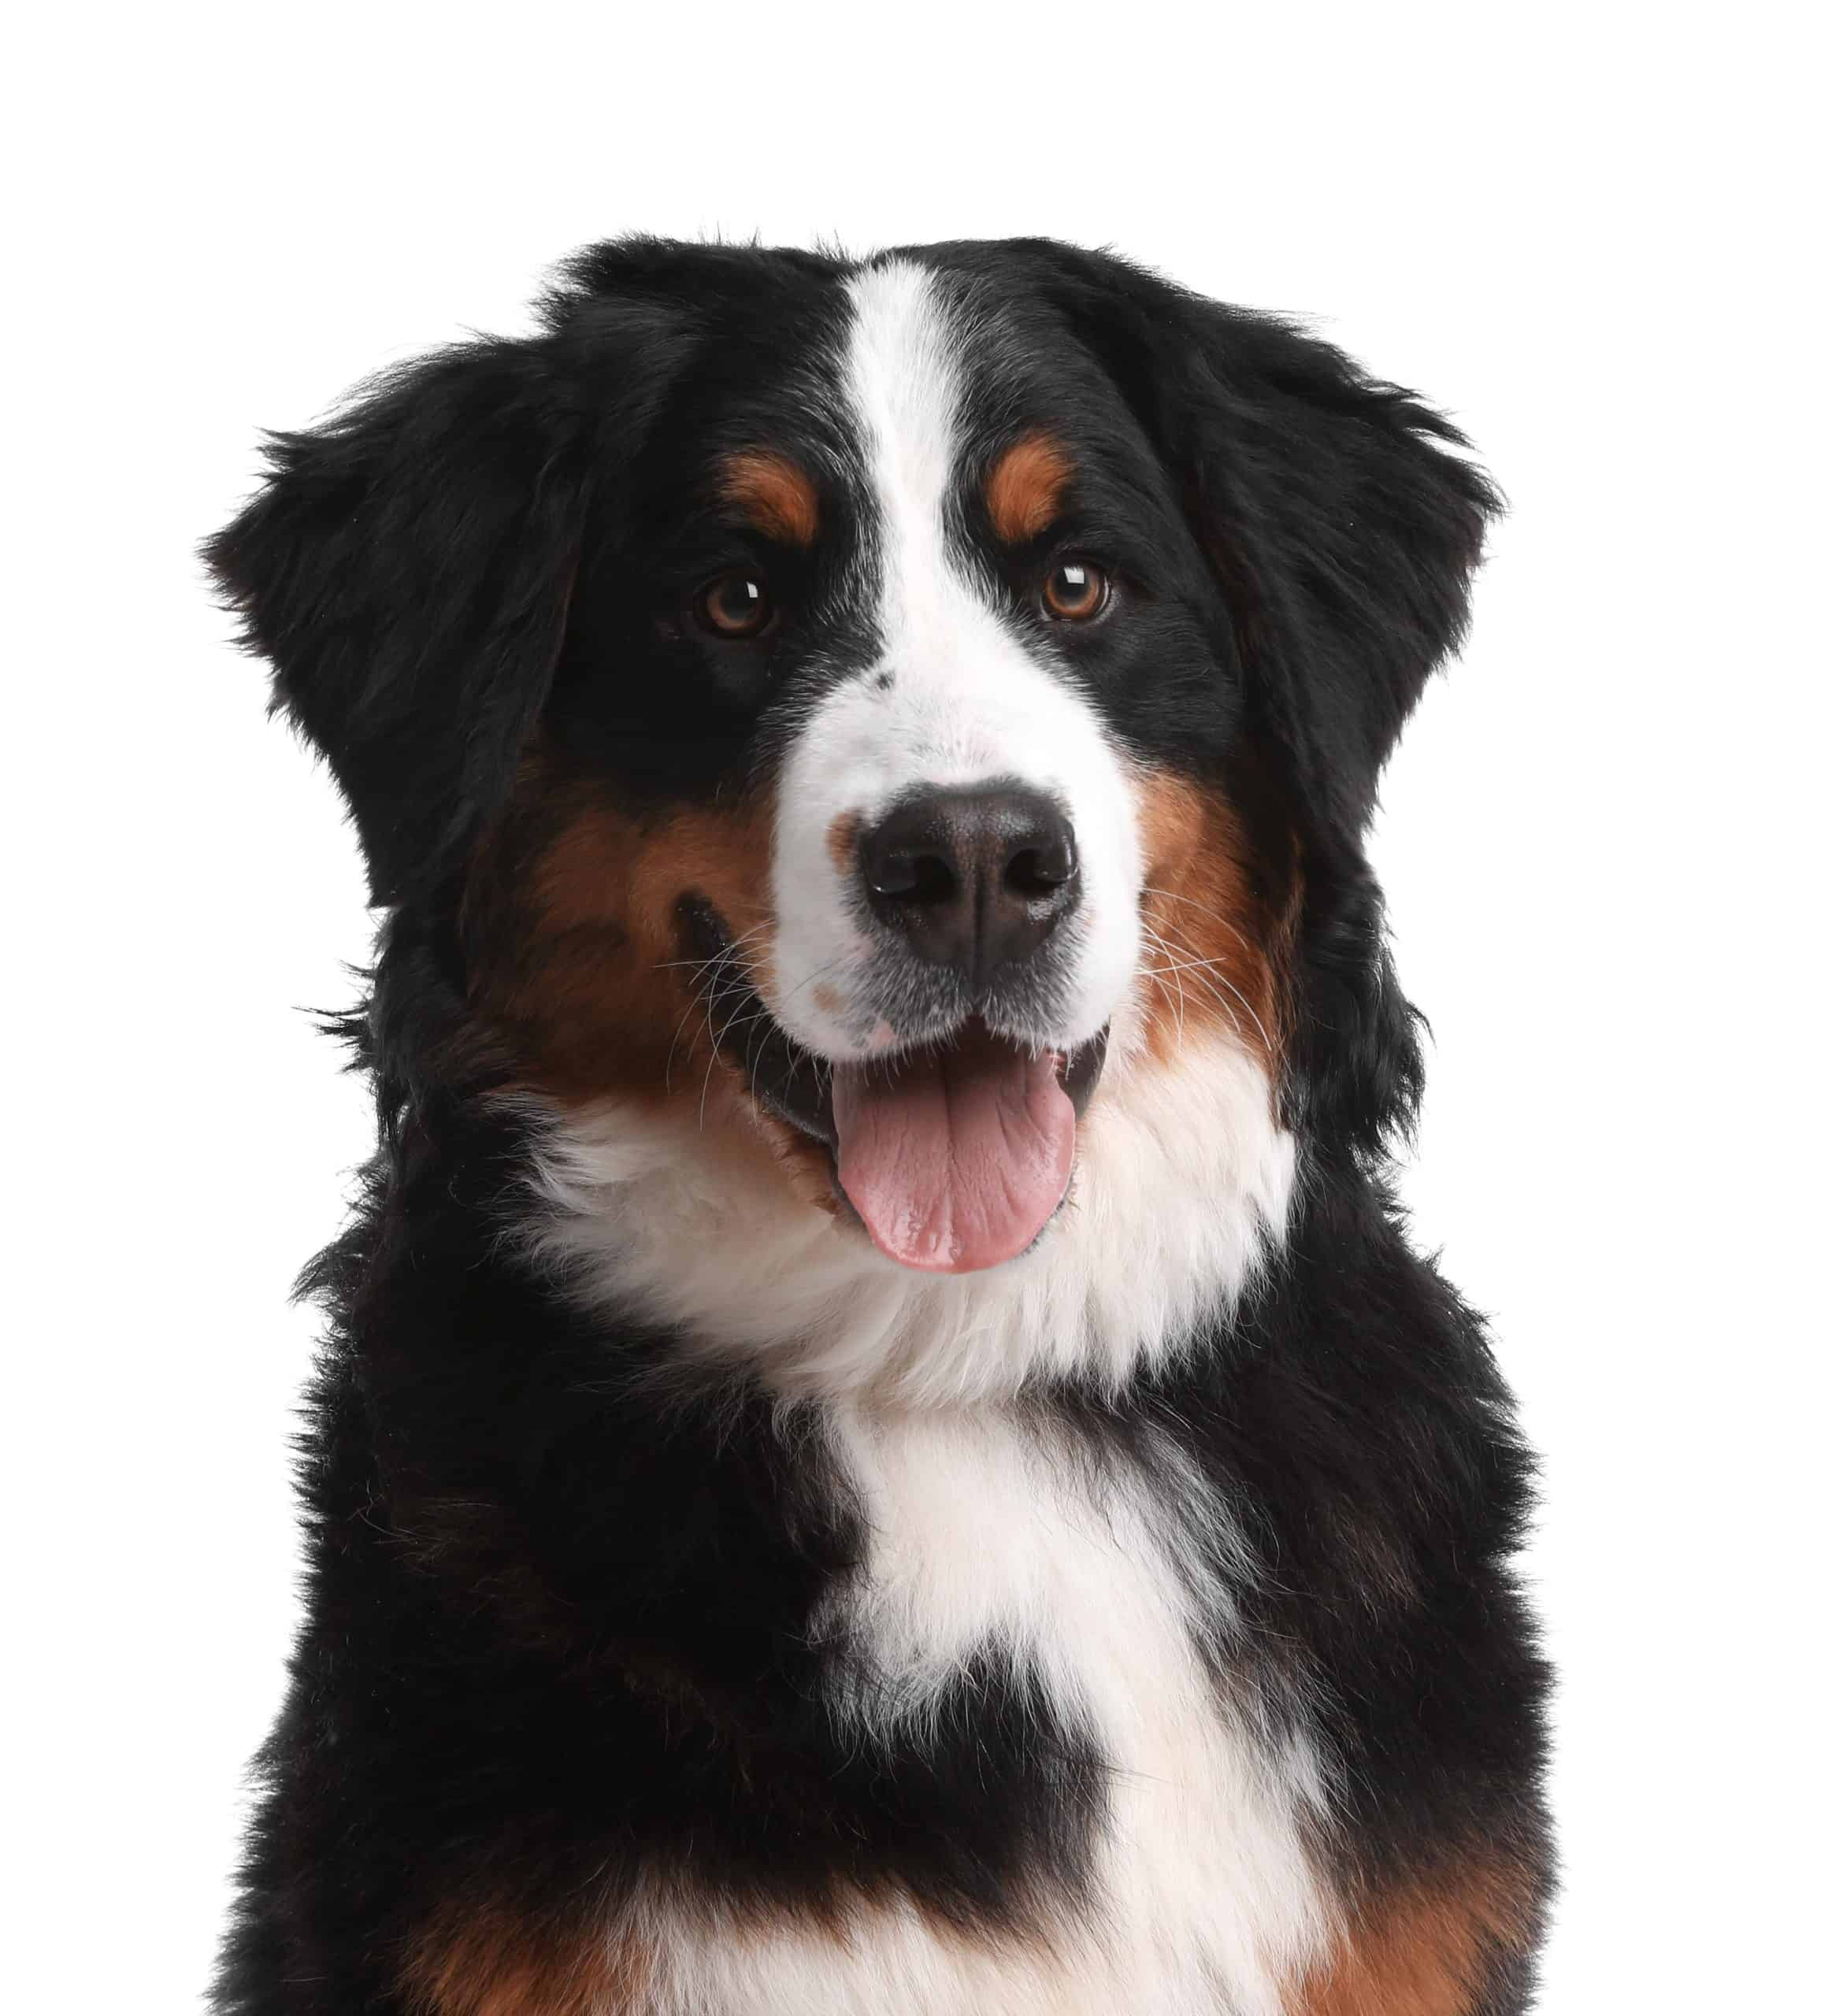 Happy Bernese Mountain Dog with tongue out. 4 Corners Cannabis is one of many CBD oil companies making products for pets as well as human beings so dogs can experience CBD benefits.